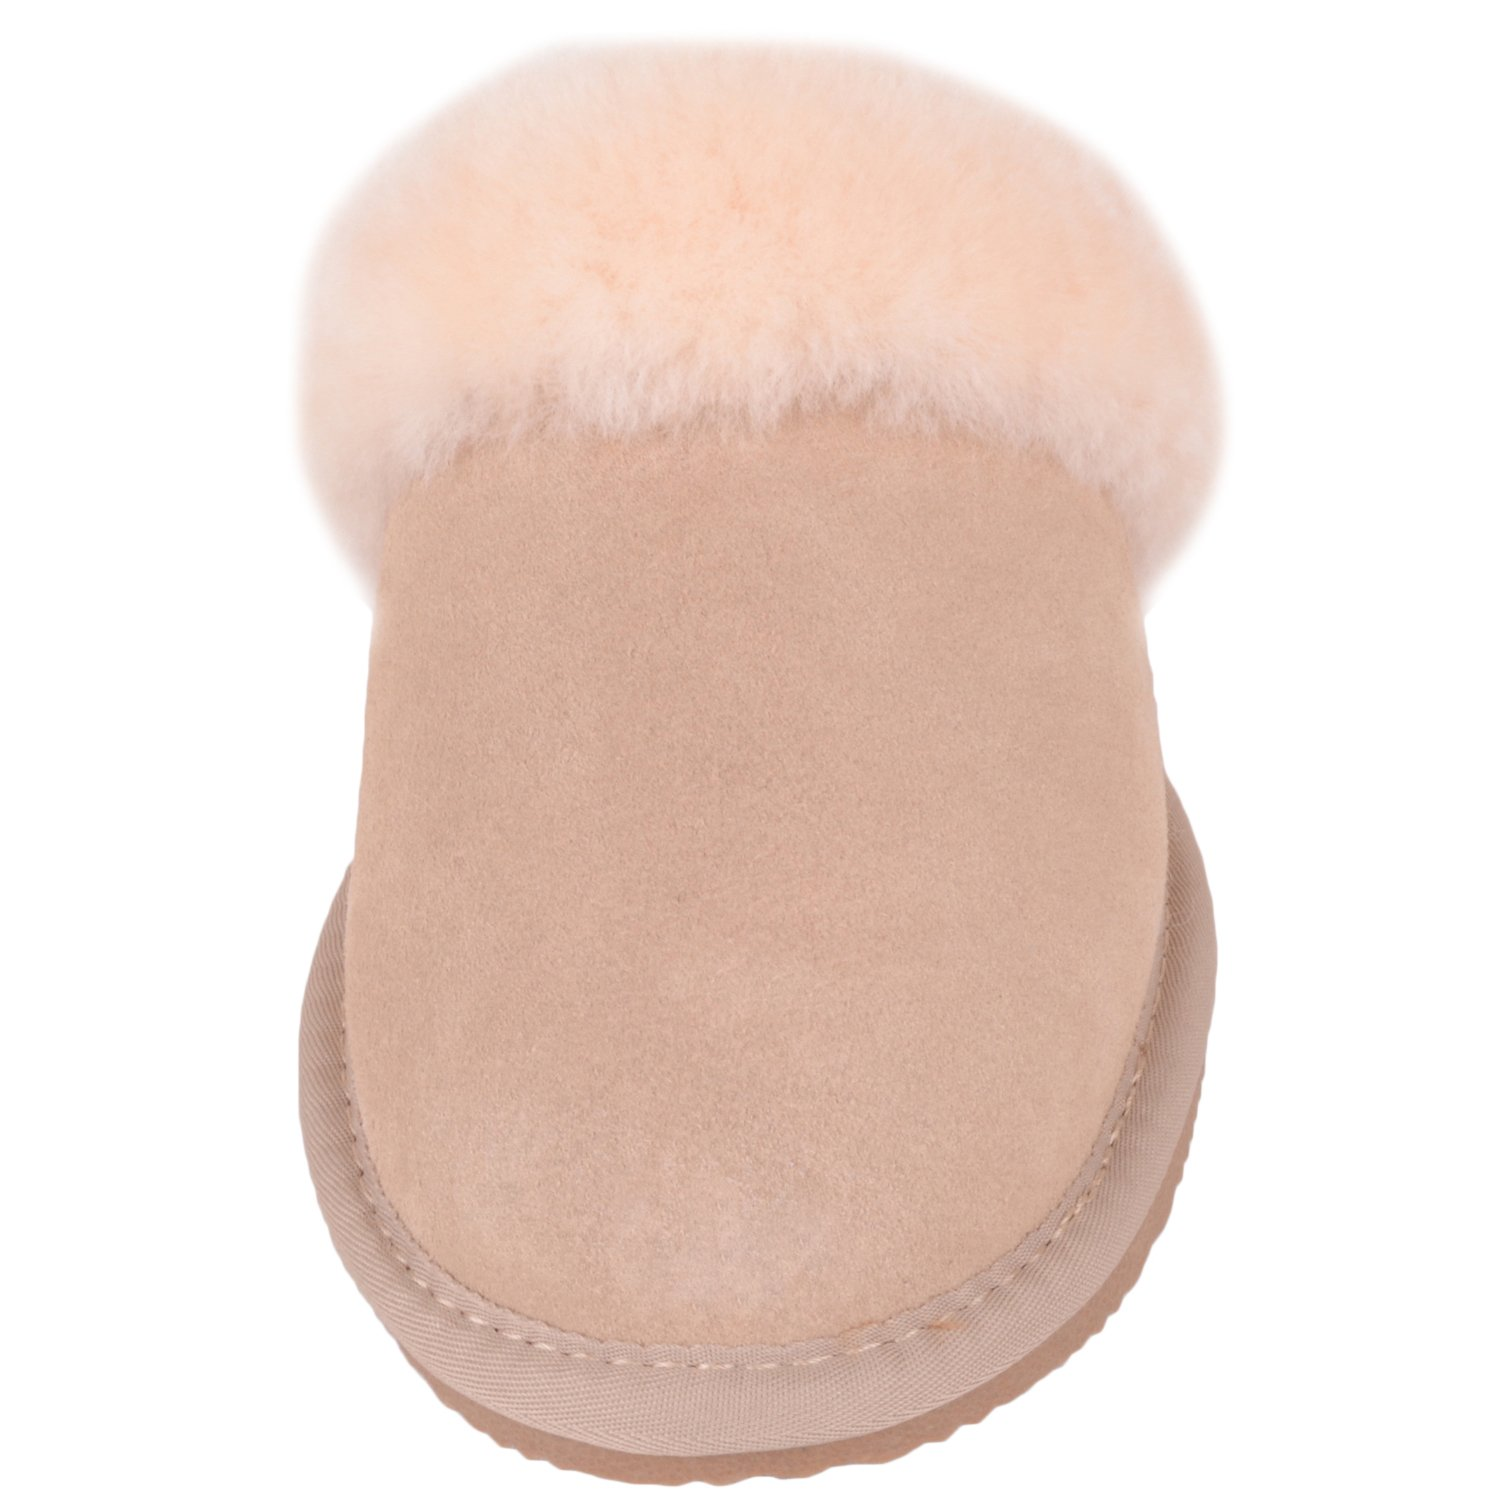 Snugrugs Damen Mule with Sheepskin Sheepskin Sheepskin Cuff and Rubber Sole Hausschuhe Beige 6e605b